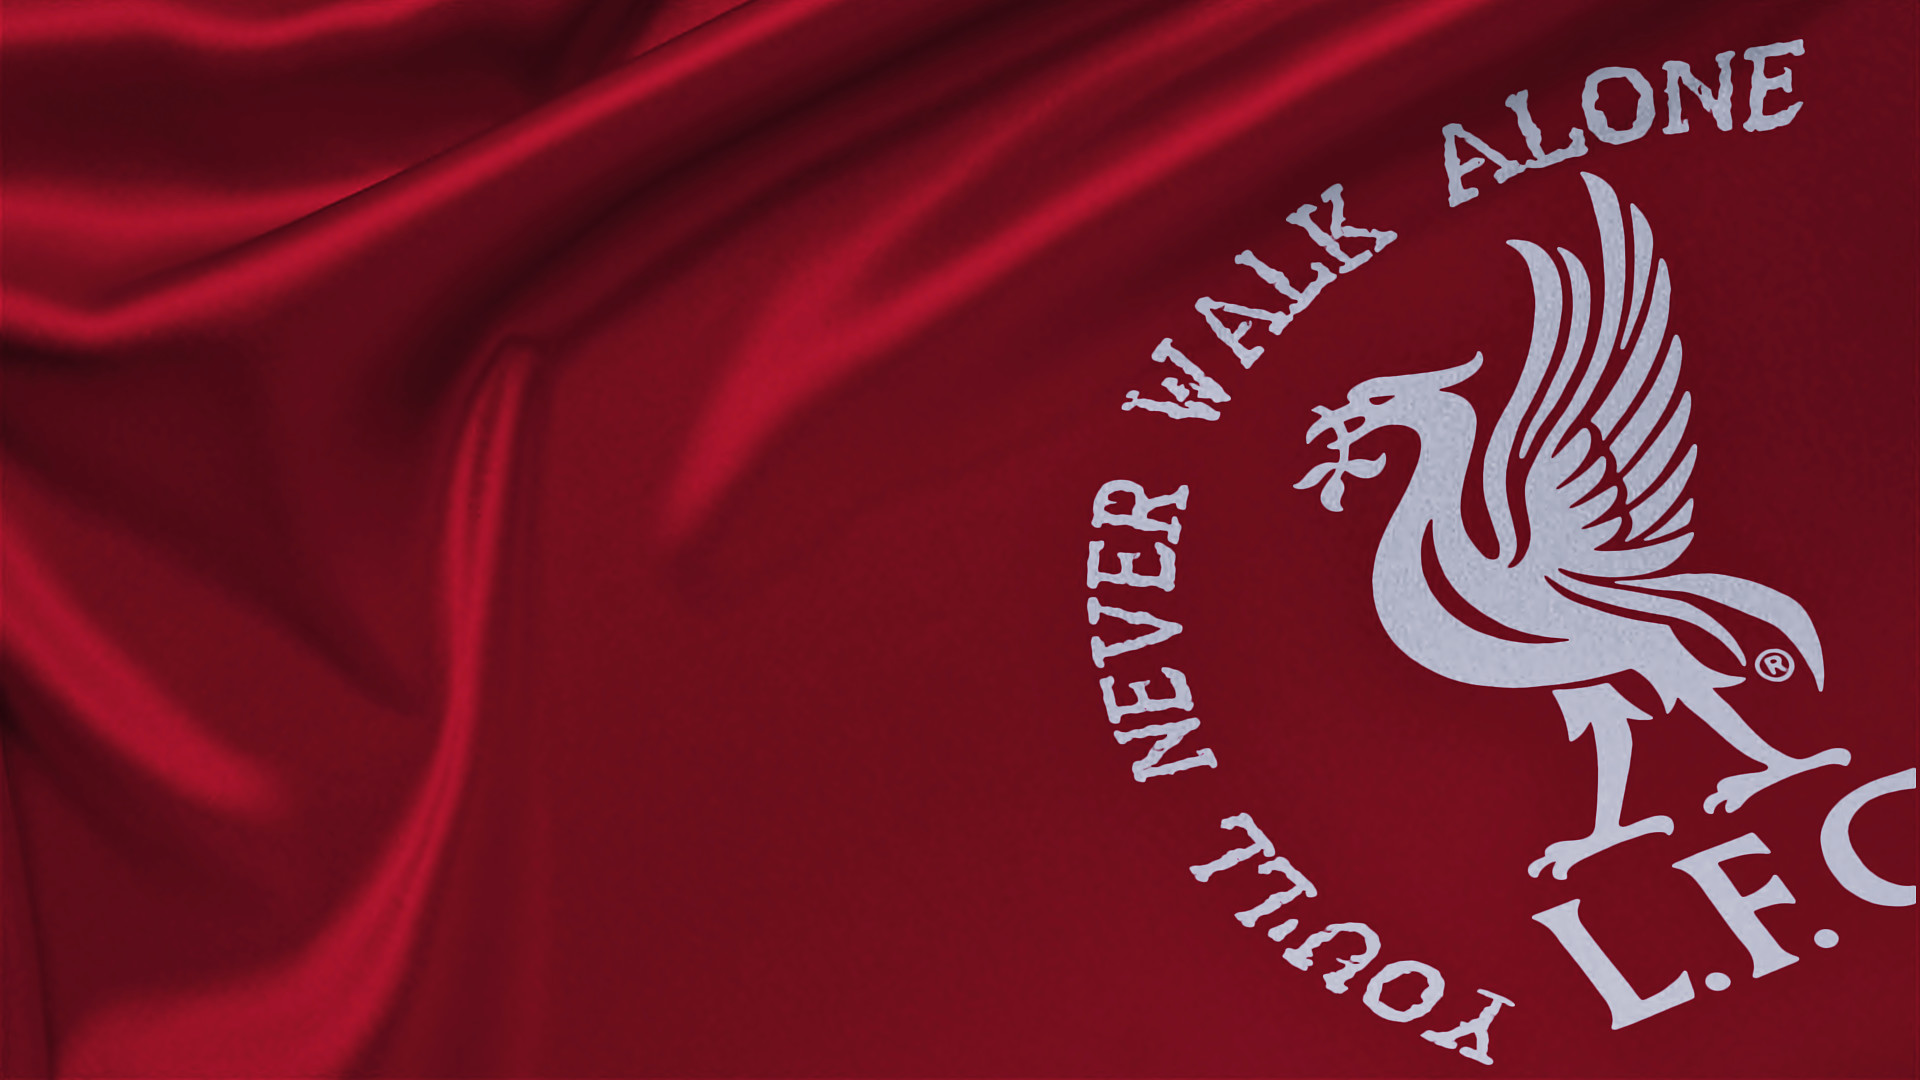 64 Lfc Wallpapers On Wallpaperplay 1080p Liverpool Wallpaper Hd 1920x1080 Download Hd Wallpaper Wallpapertip